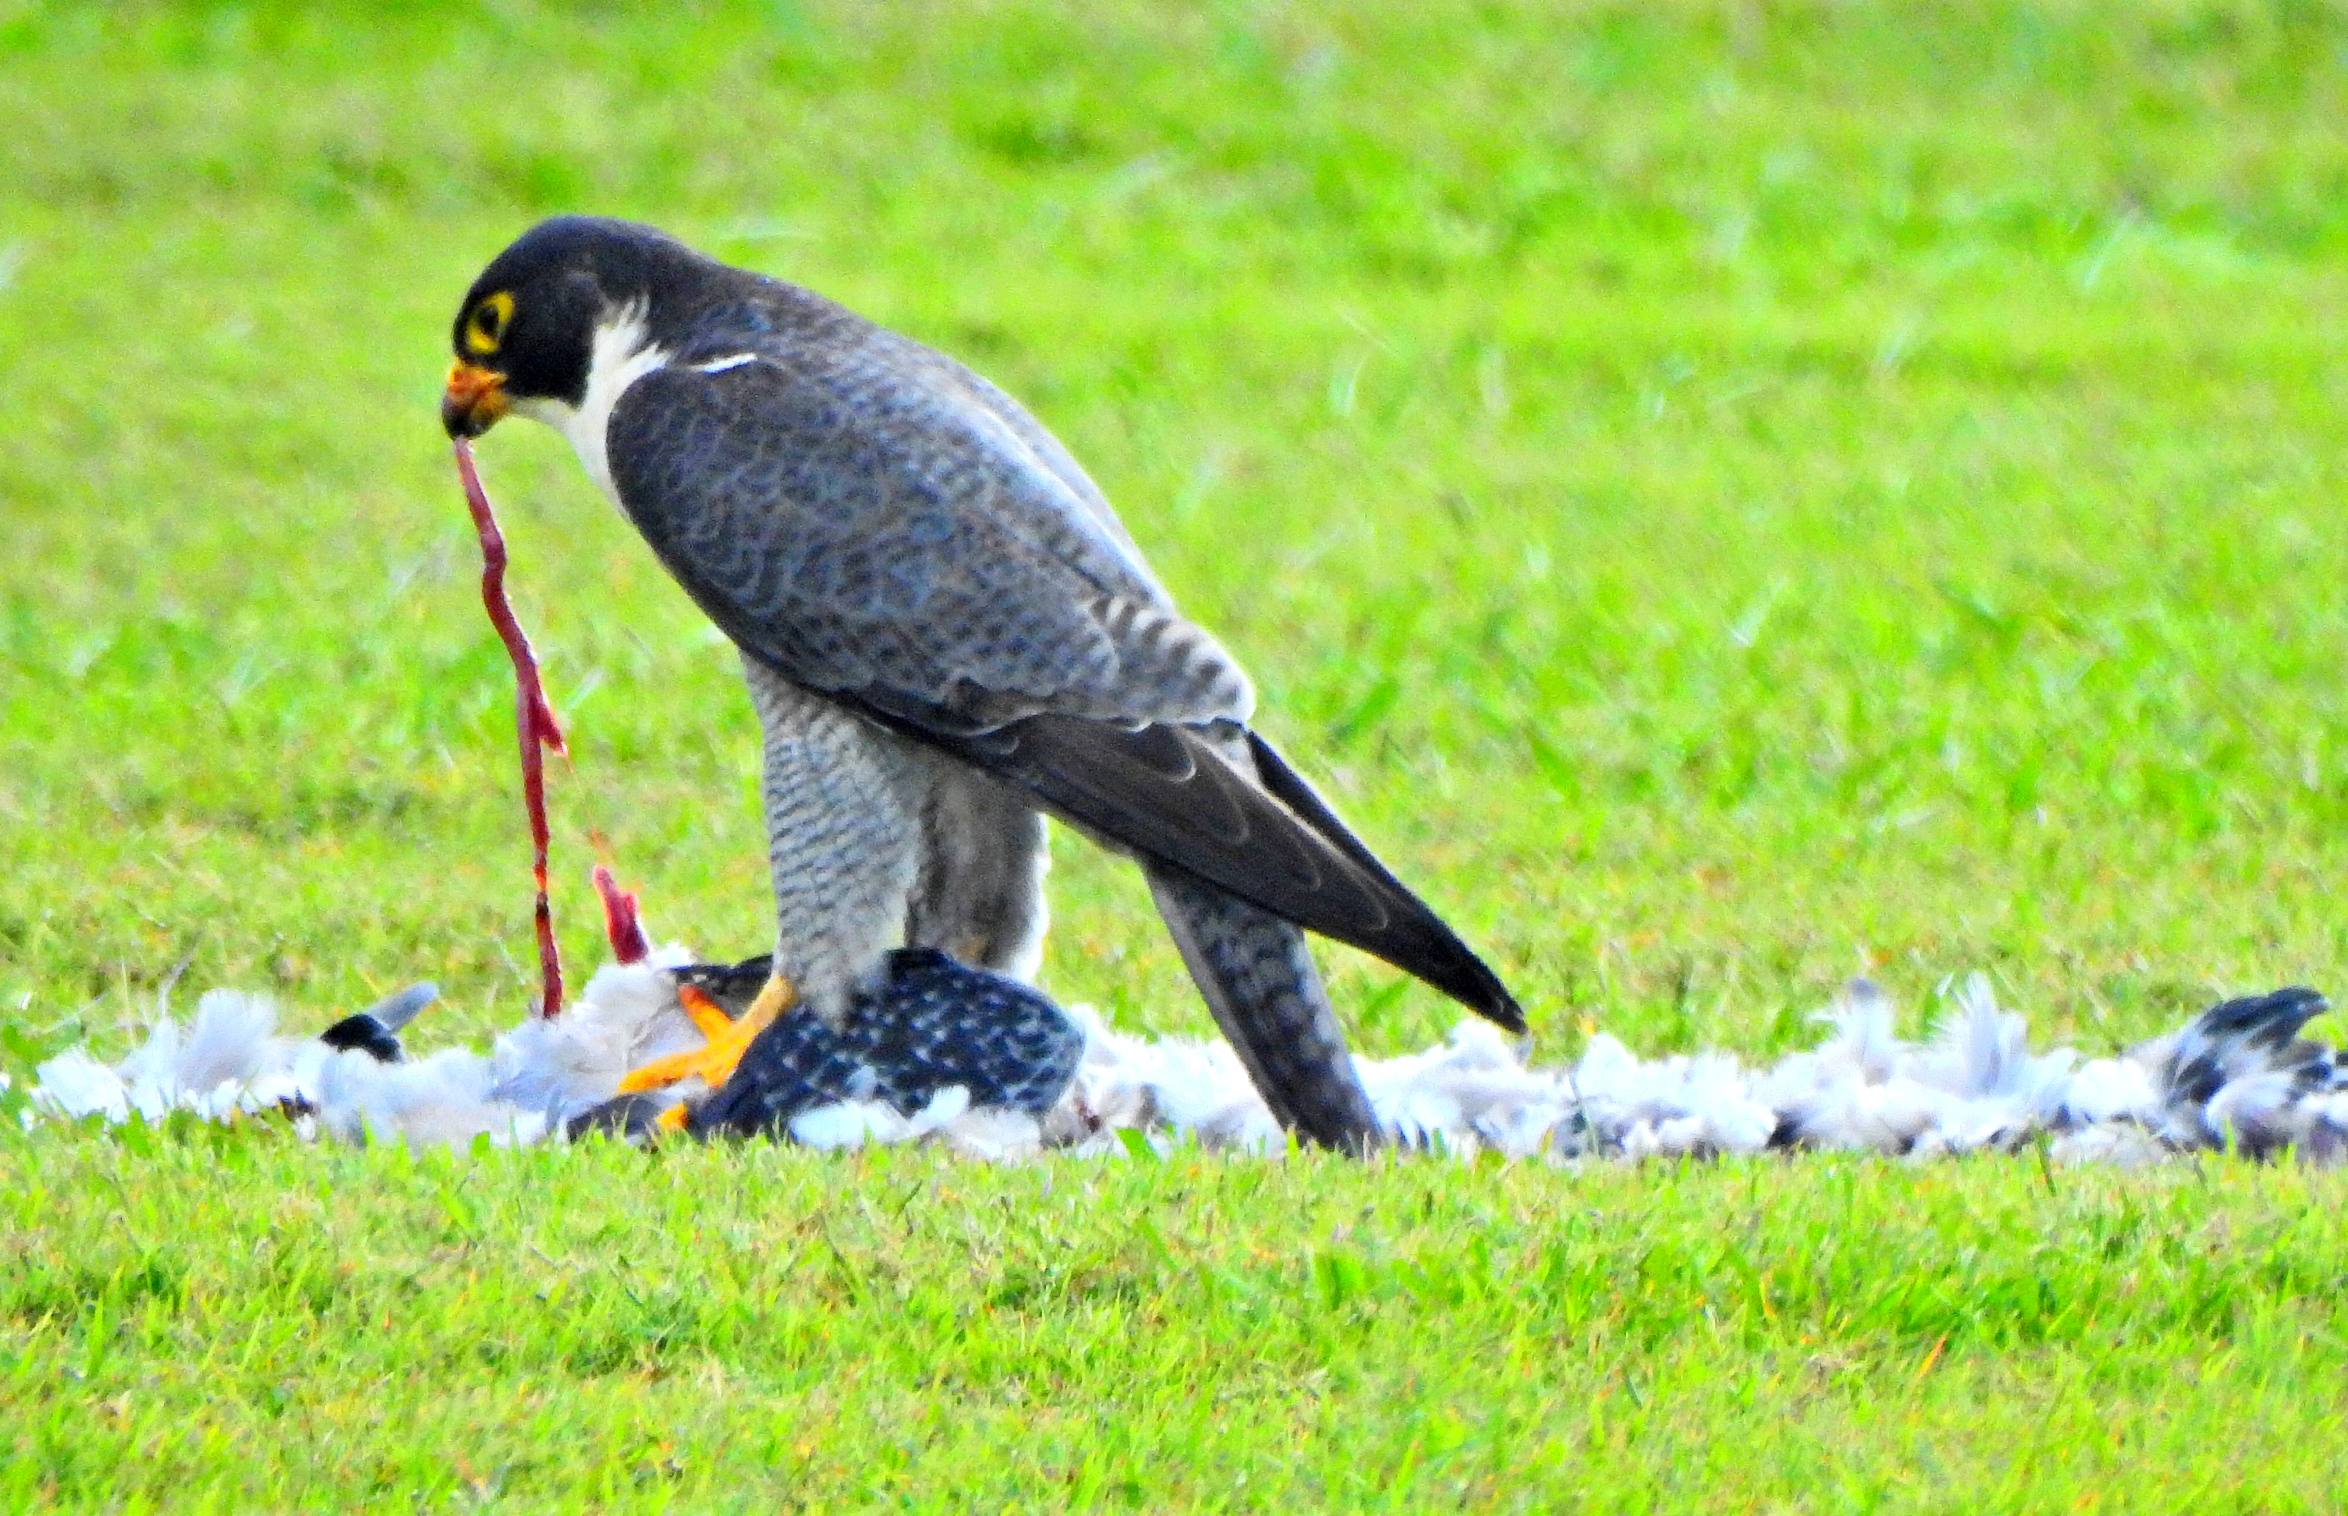 Peregrin Falcon lunchtime